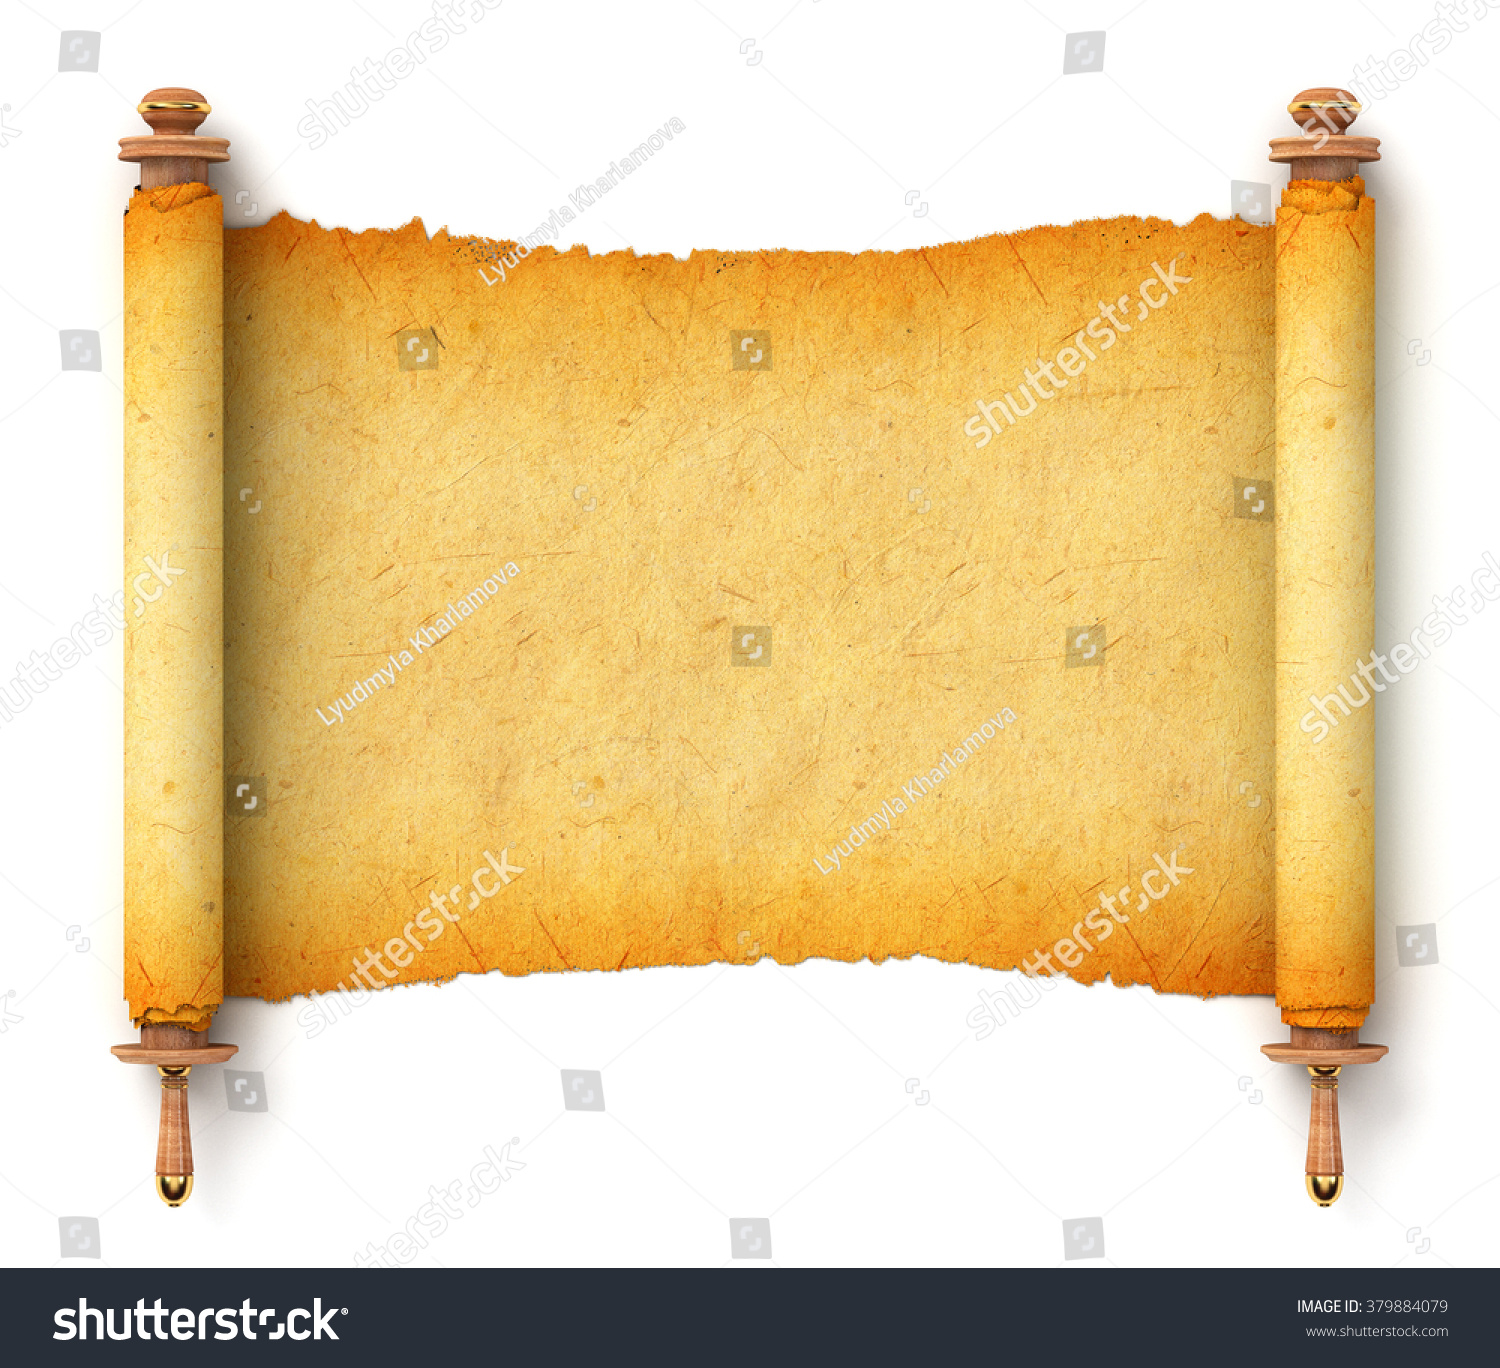 Ancient Scroll: Ancient Empty Scroll. Torah Unfurled With Wooden Handles